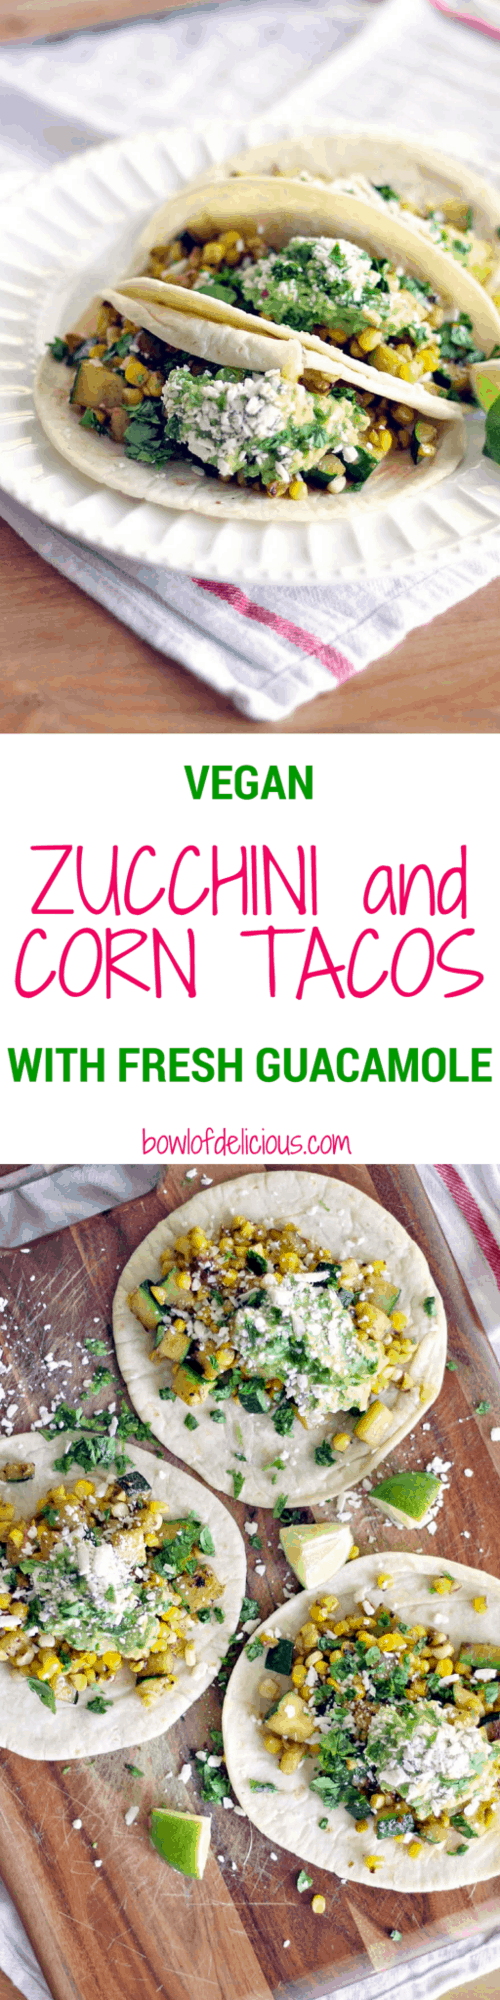 Zucchini and Corn Tacos with Fresh Guacamole